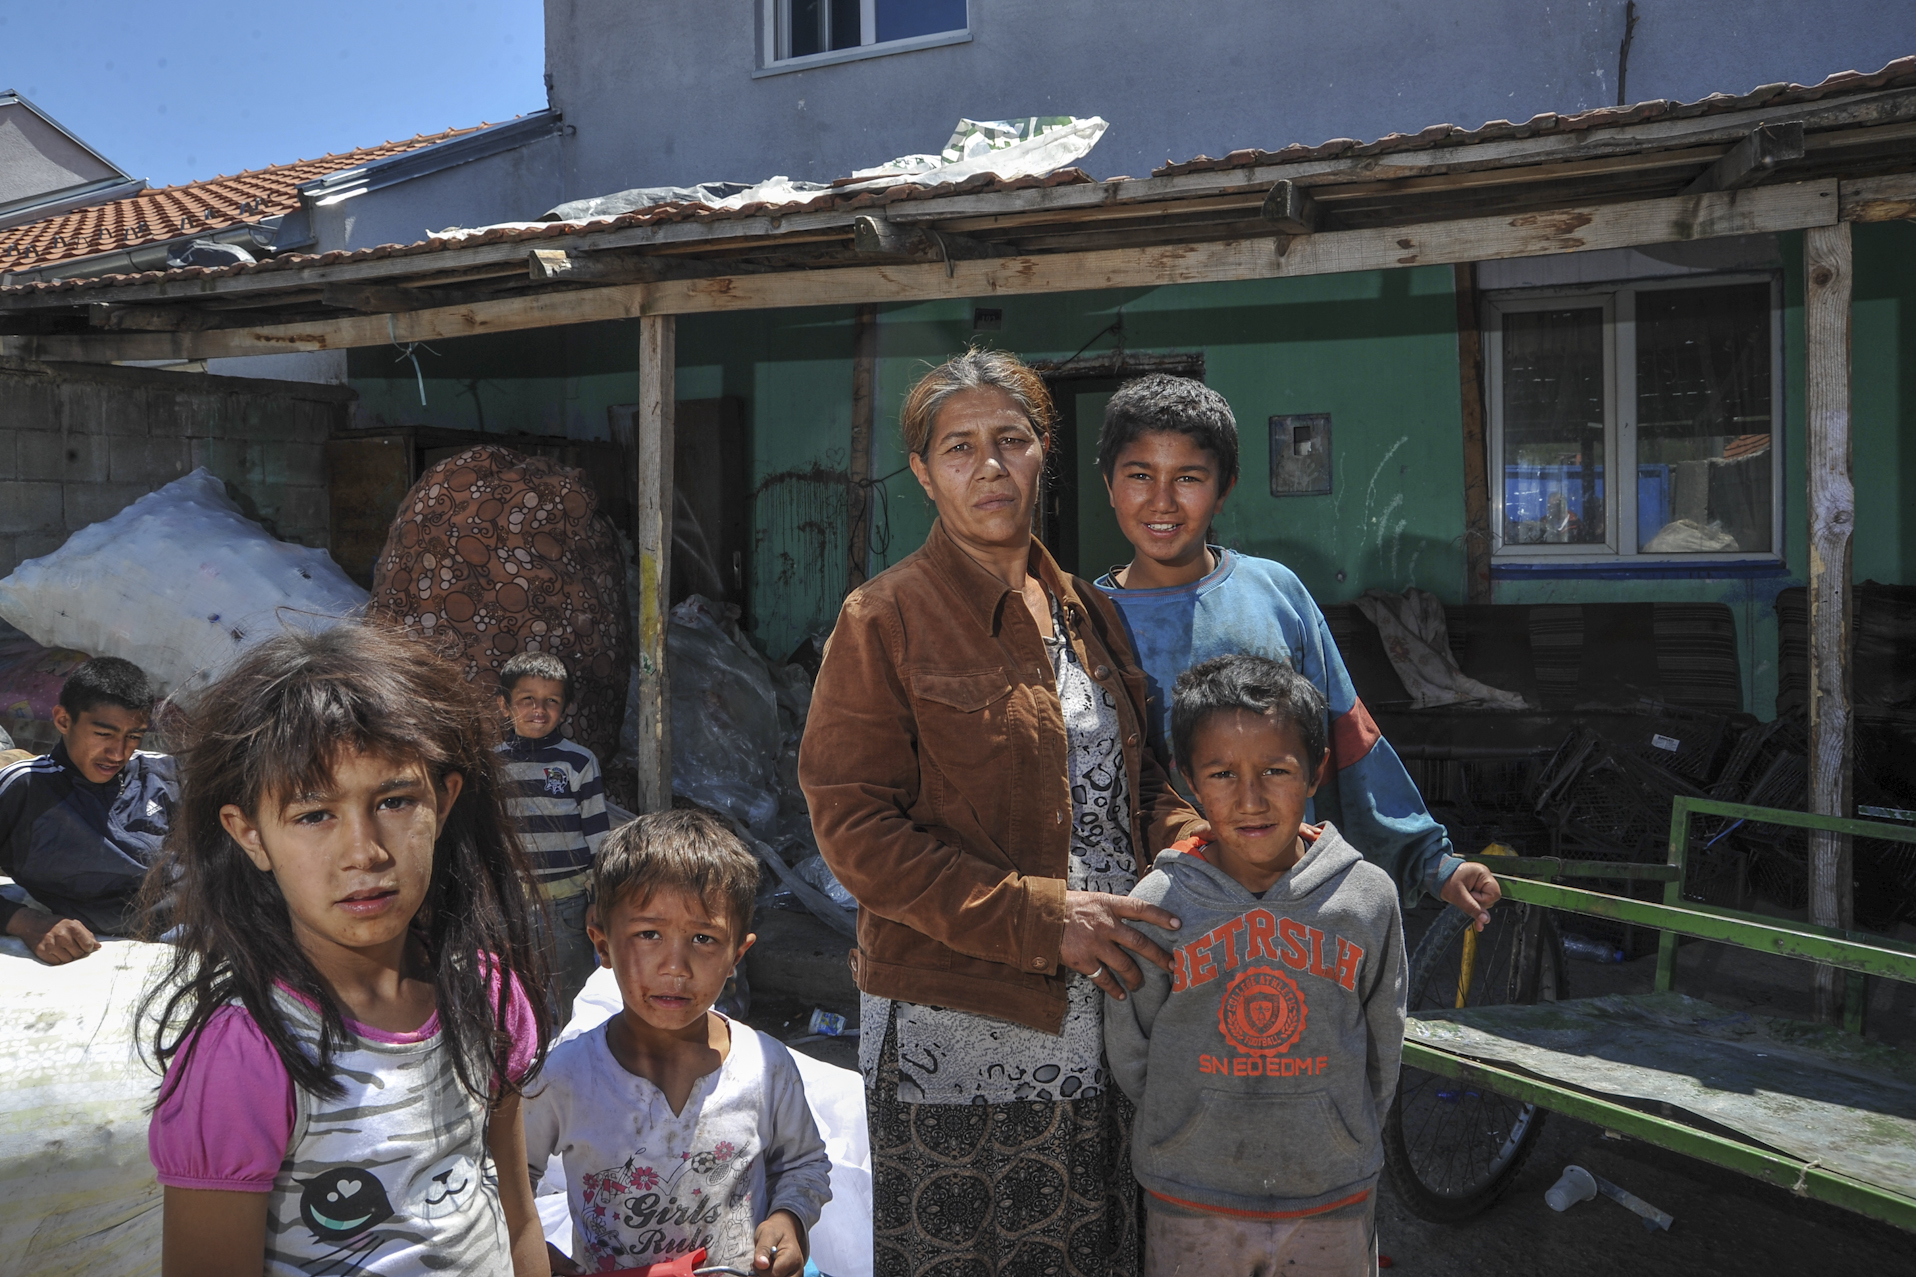 Fetije Sevdiu stands in front of her house in the Roma mahalla in Mitrovica. Photo: Atdhe Mulla.